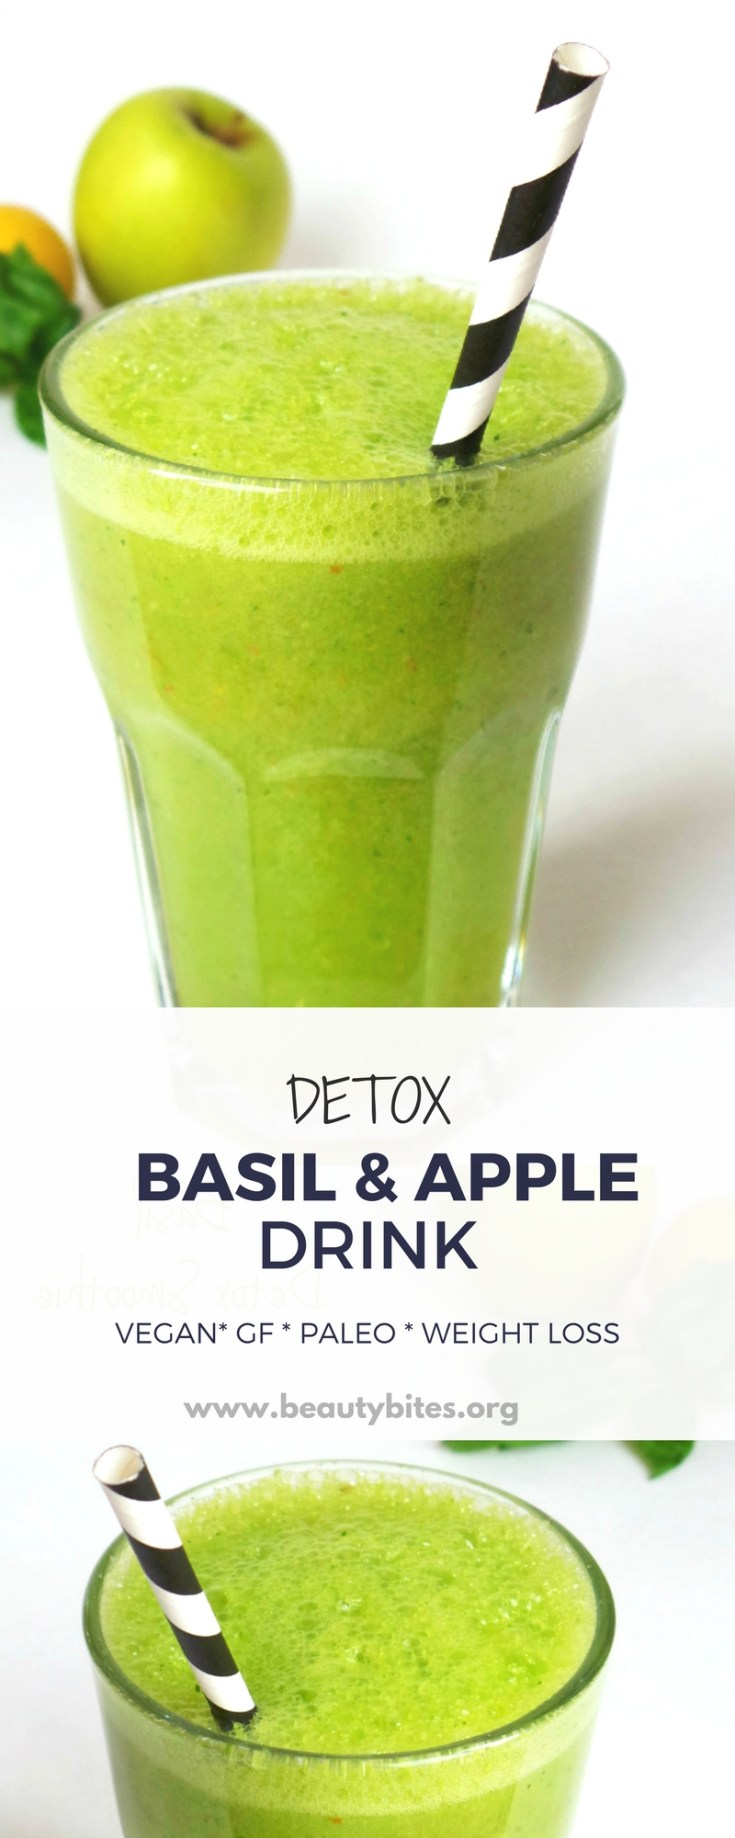 Basil and apple healthy green smoothie for detox and weight loss! This healthy smoothie recipe is vegan, gluten-free and paleo and helped me stay awake although I was working like crazy #greensmoothie #detox